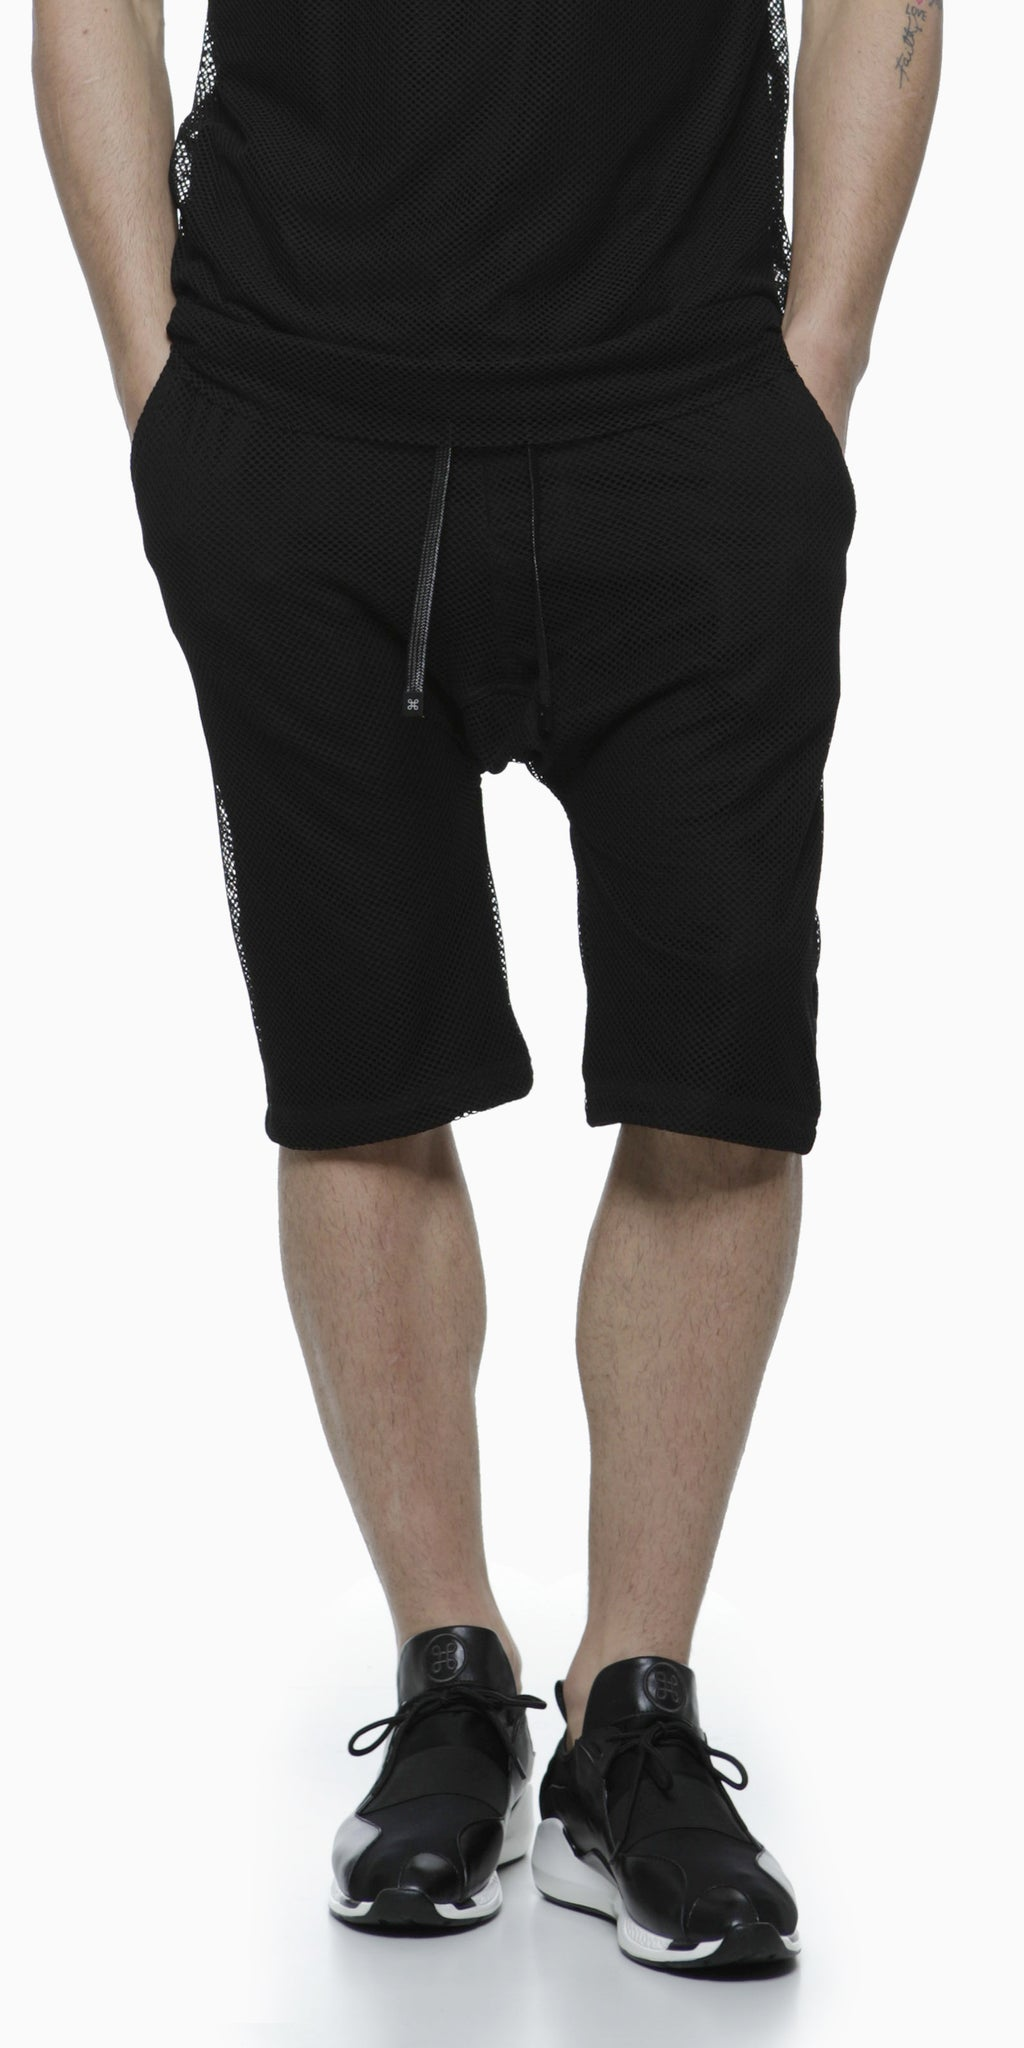 MESH LAYERED SHORTS / BLACK - HIP AND BONE